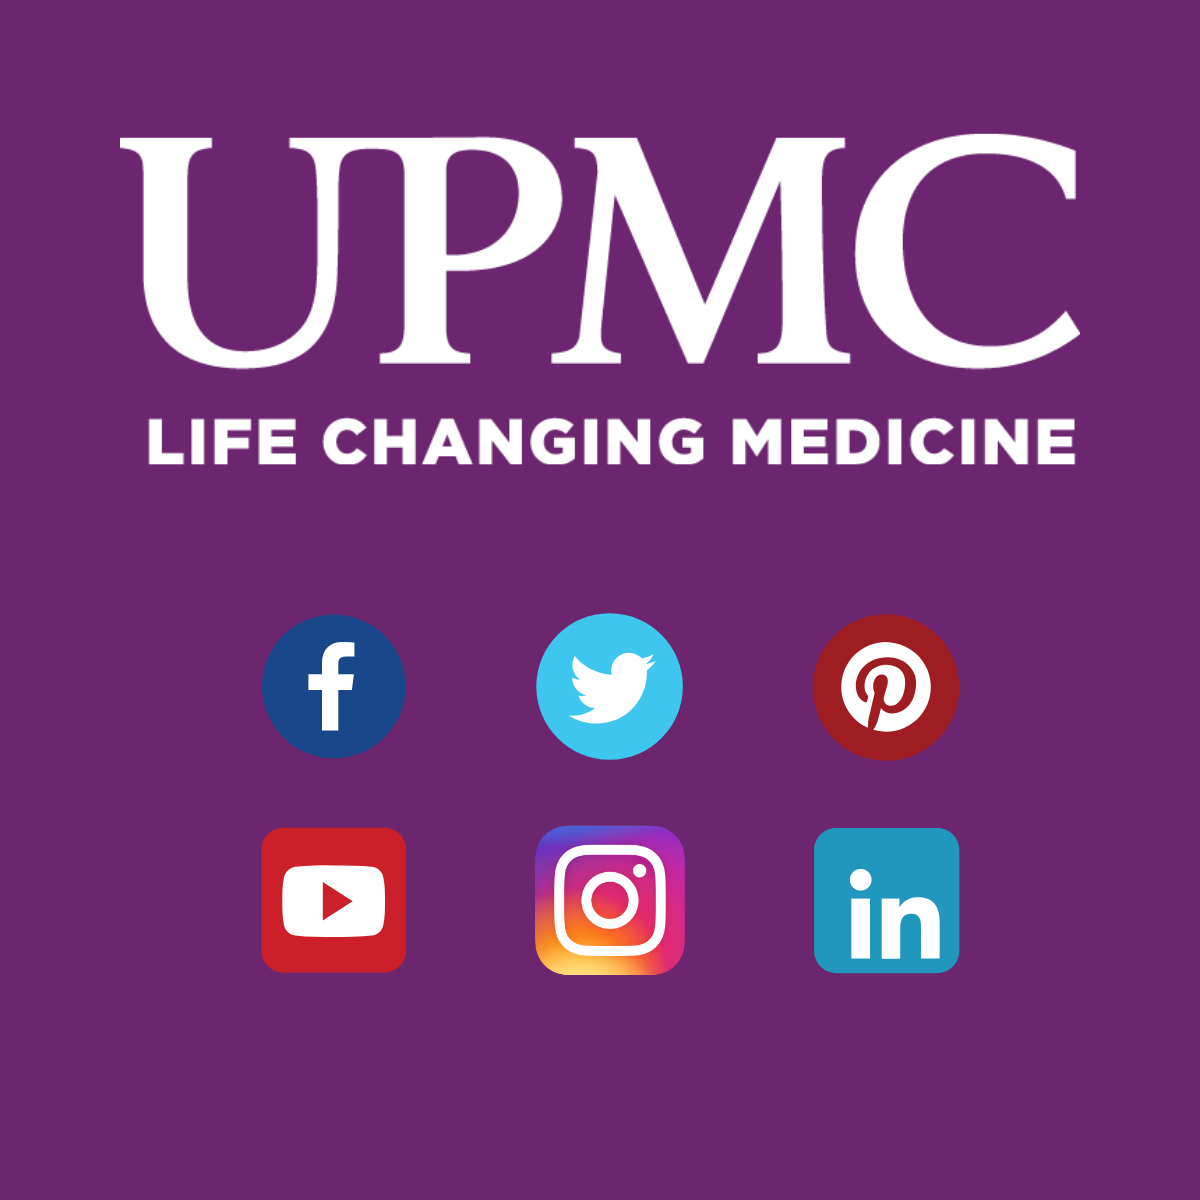 UPMC social media playbook